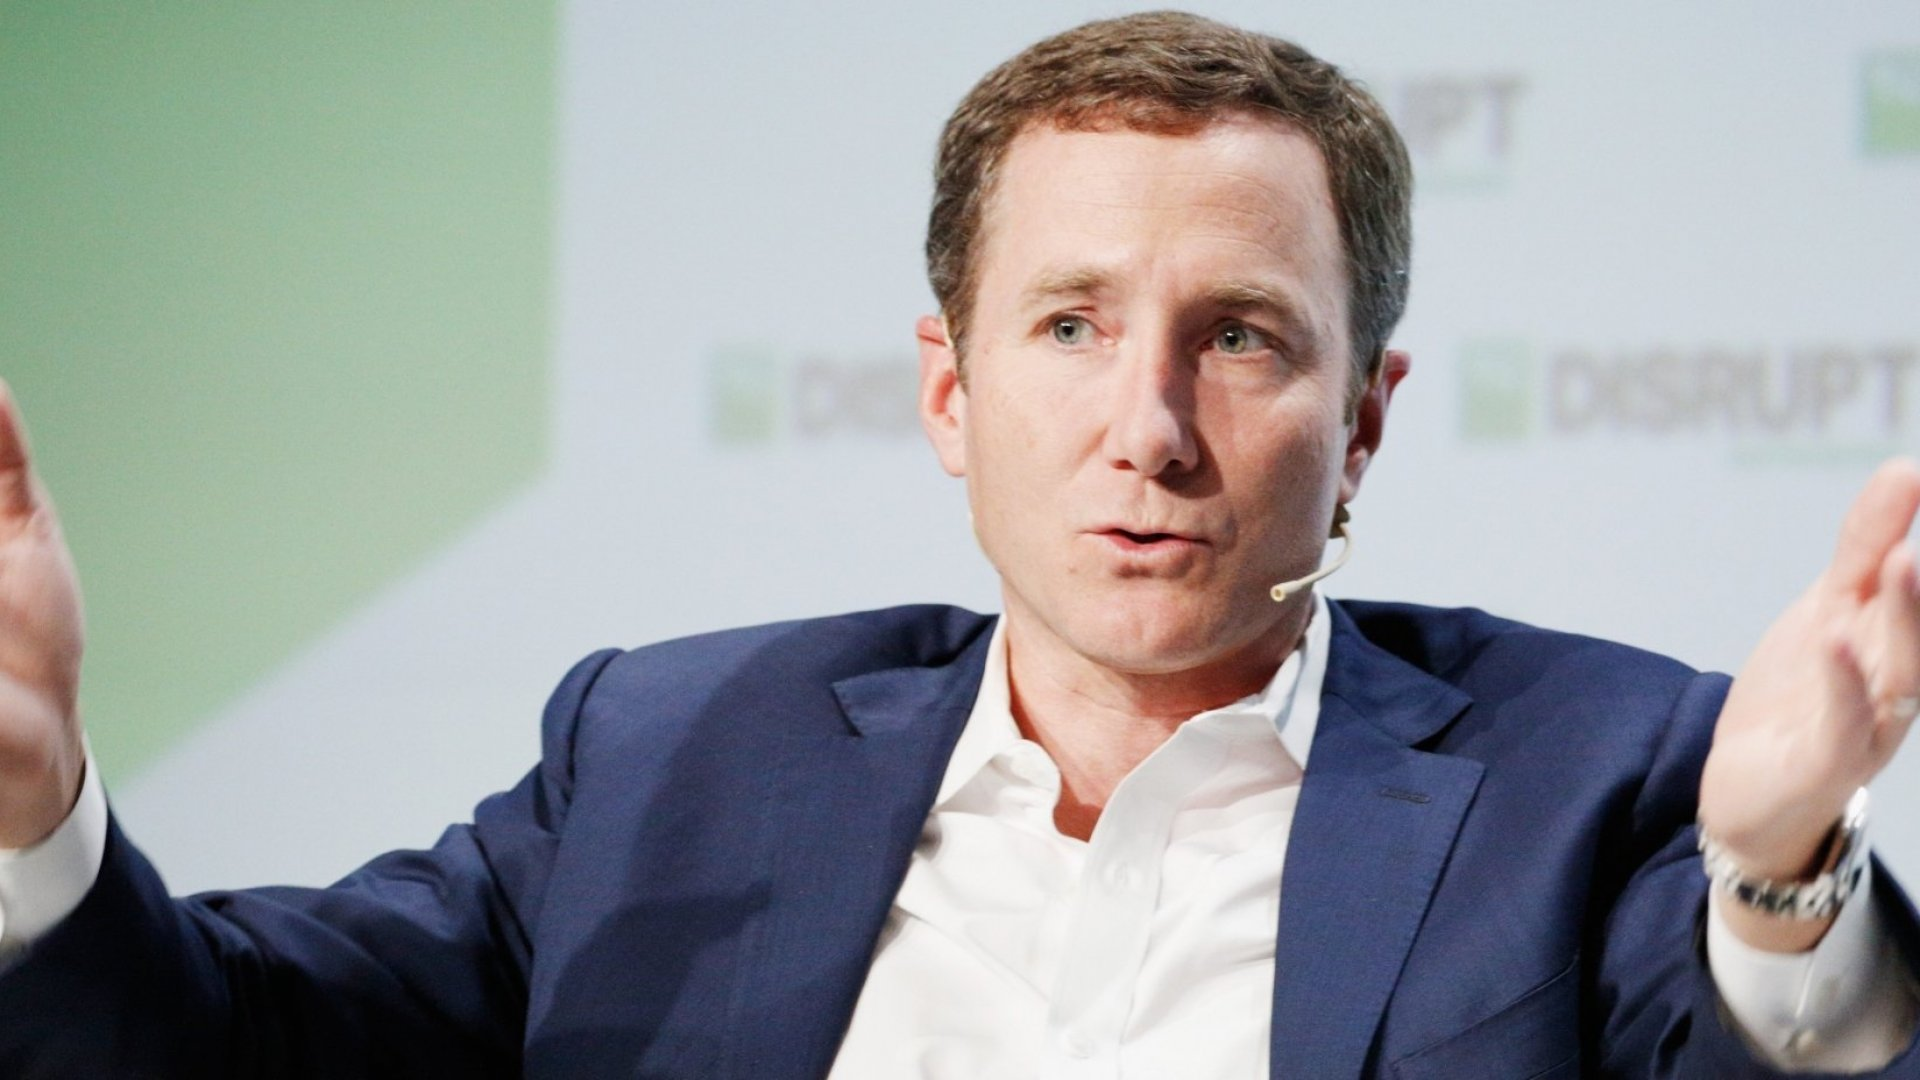 Peloton Erased Over $900 Million of Investor Capital After Its IPO